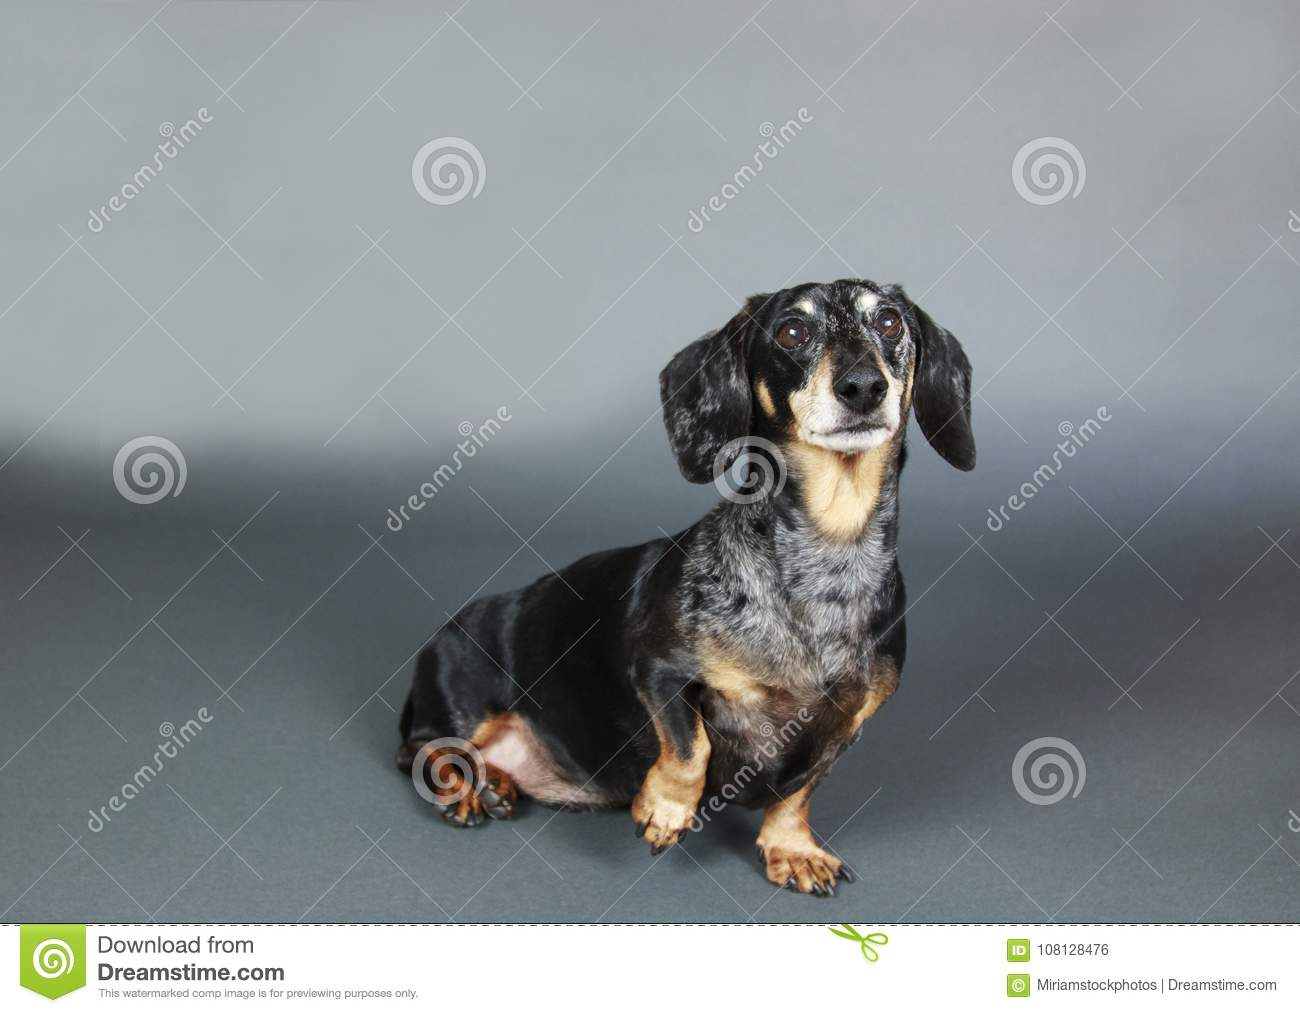 Small Black and Tan Dachshund lifting paw and sitting down on gr